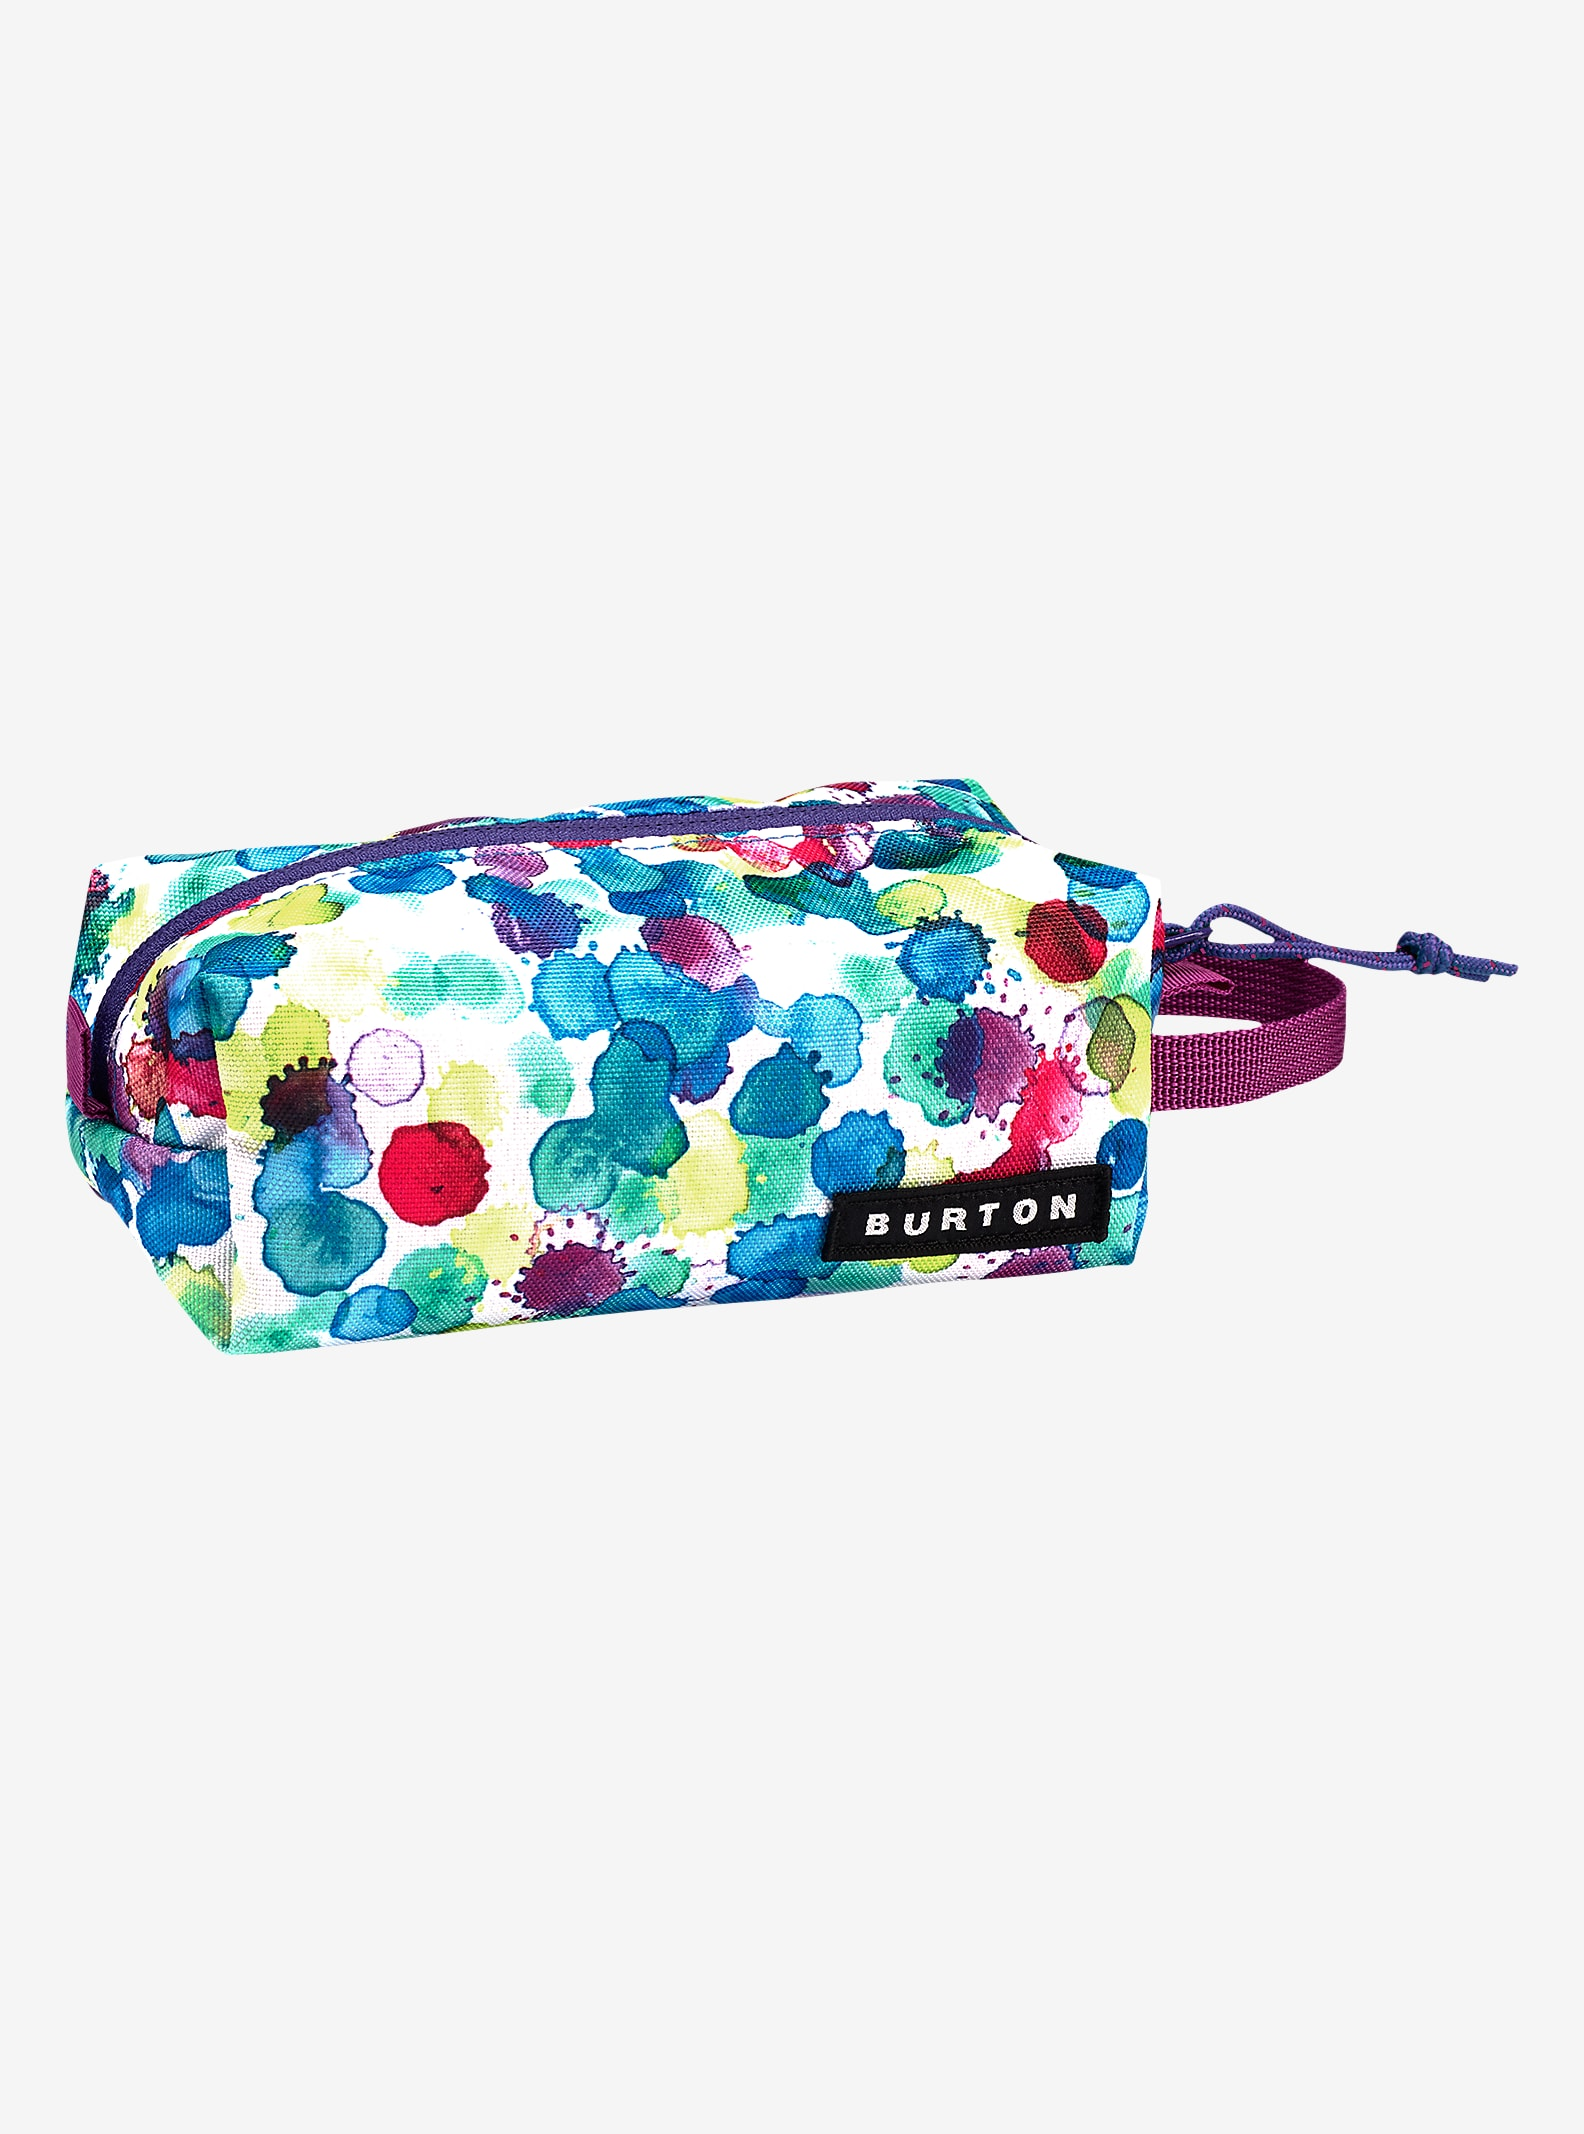 Burton Accessory Case shown in Rainbow Drops Print